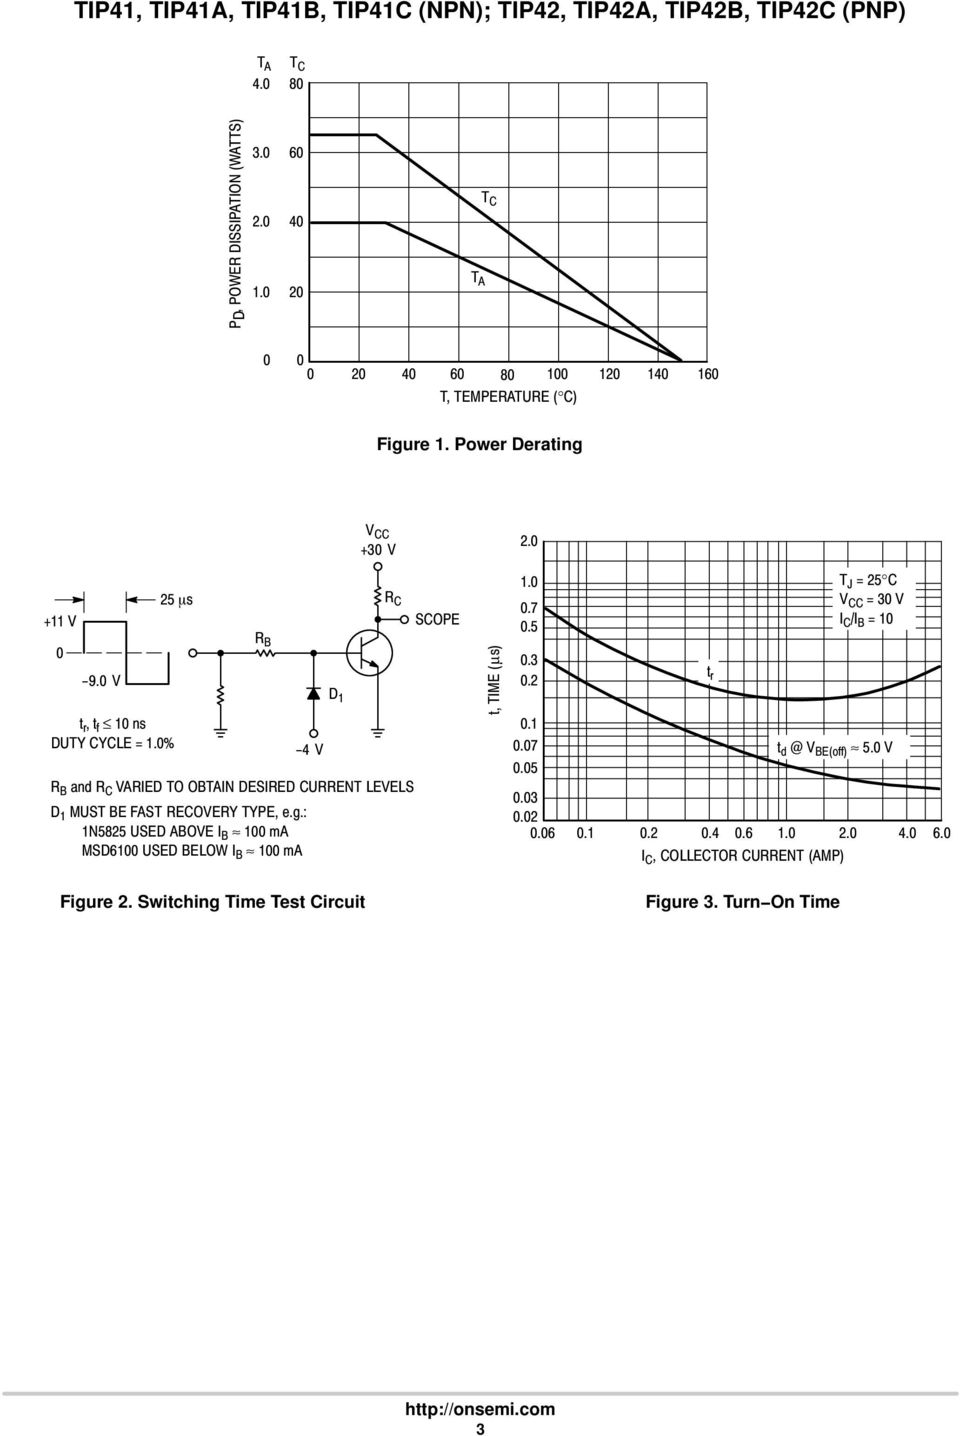 medium resolution of r b 4 v r b and r c varied to obtain desired current levels d 1 must be